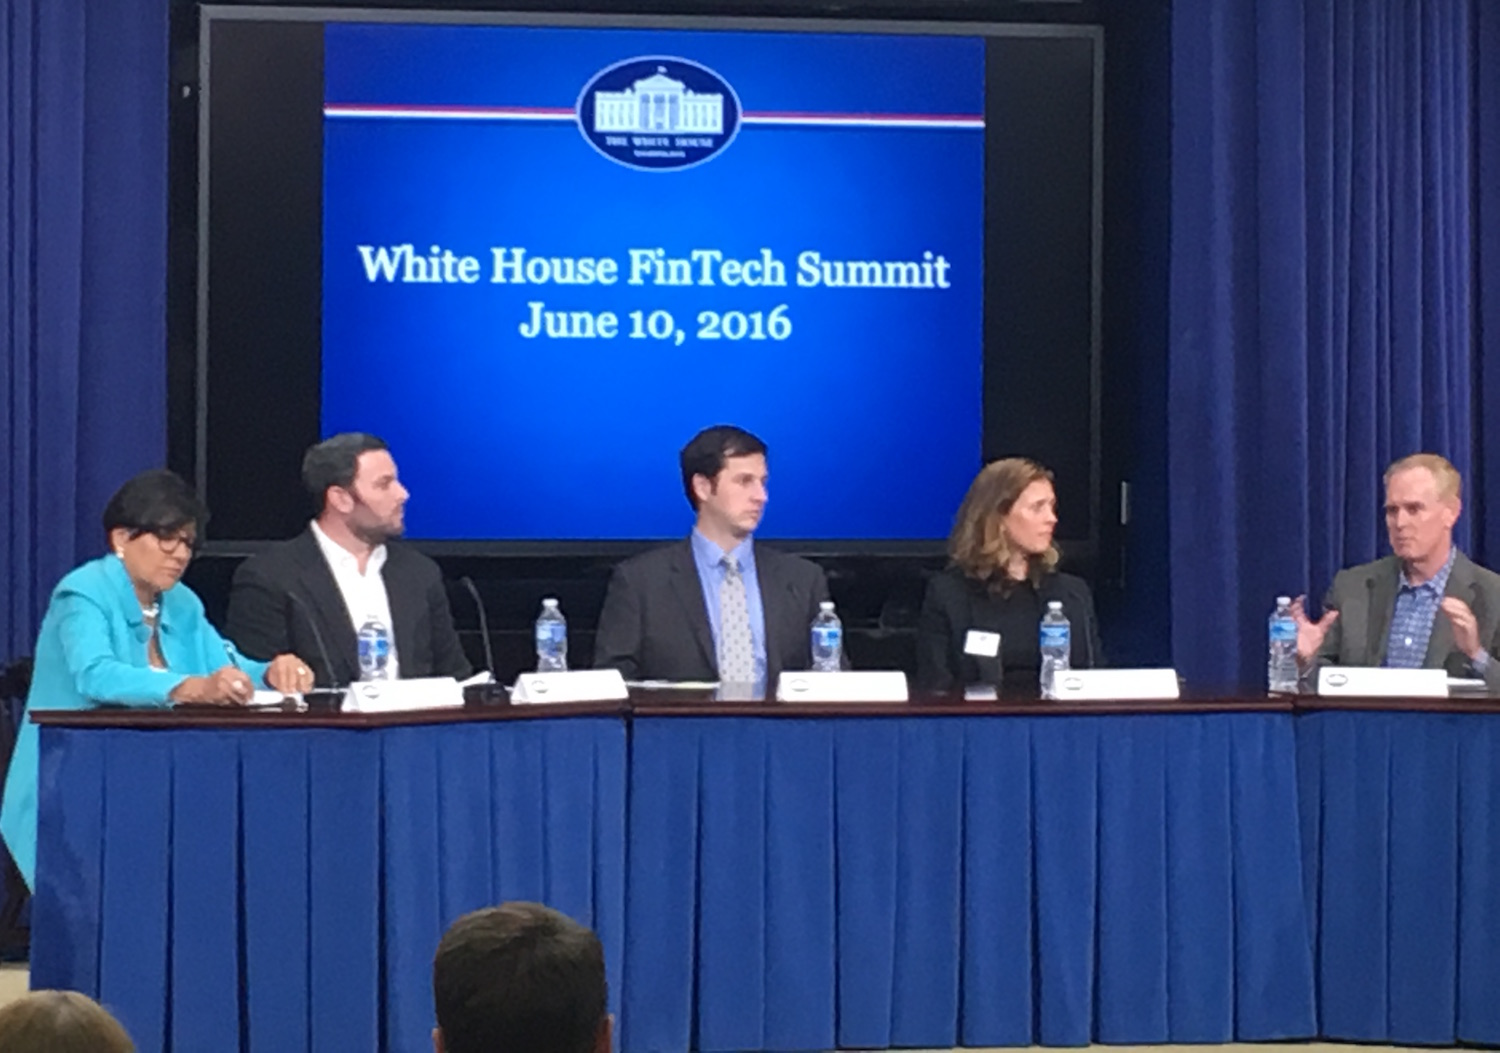 White House Fintech Summit